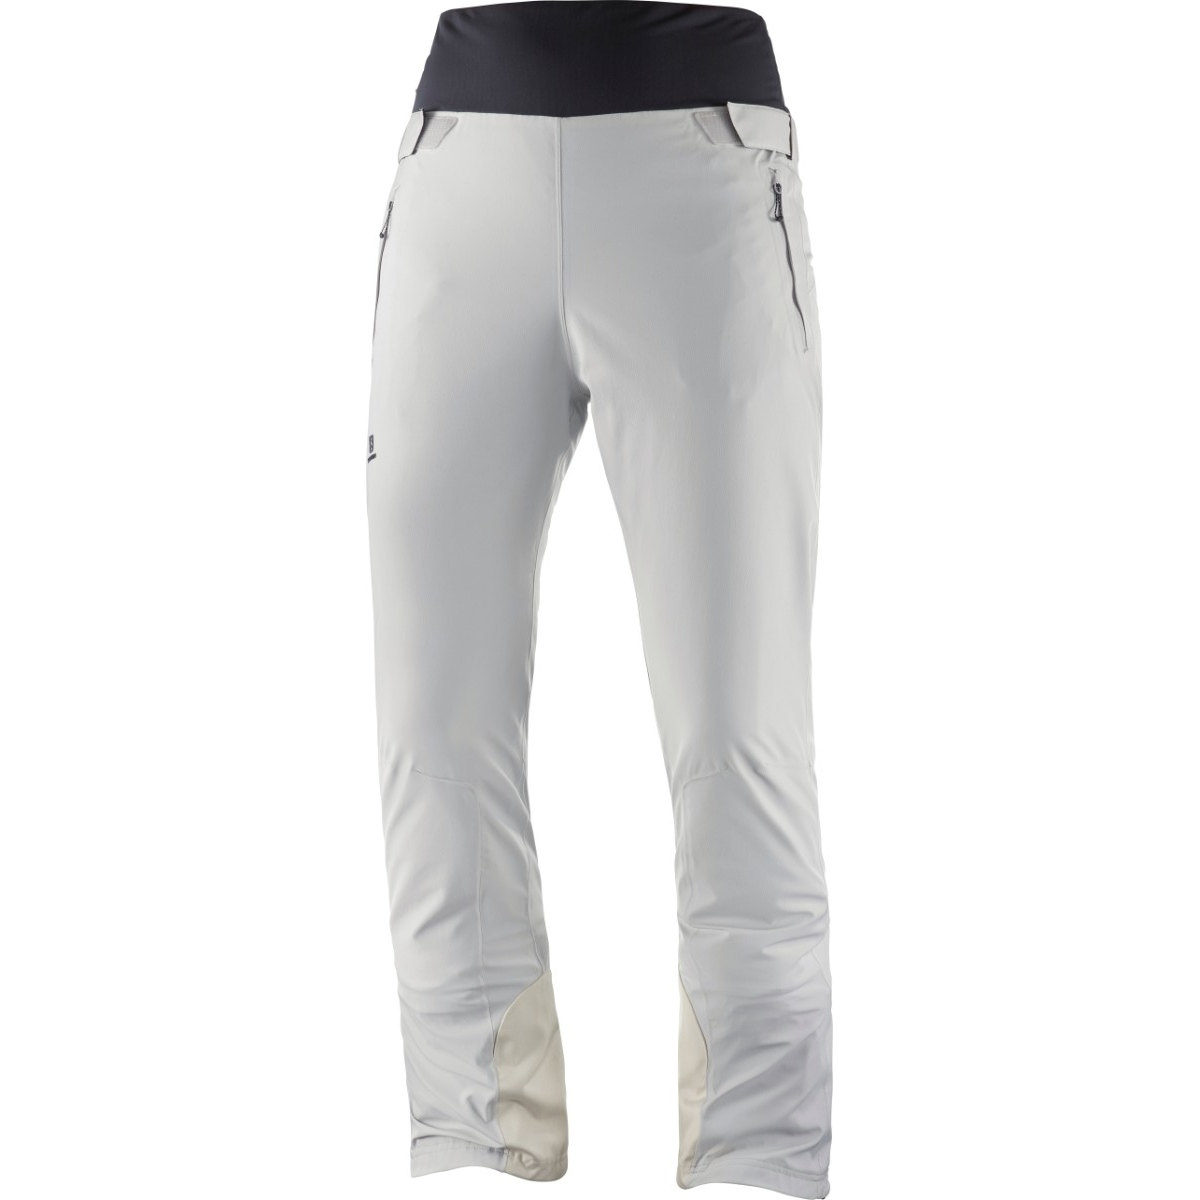 Salomon Pantaloni de ski Salomon ICEFANCY - Alb